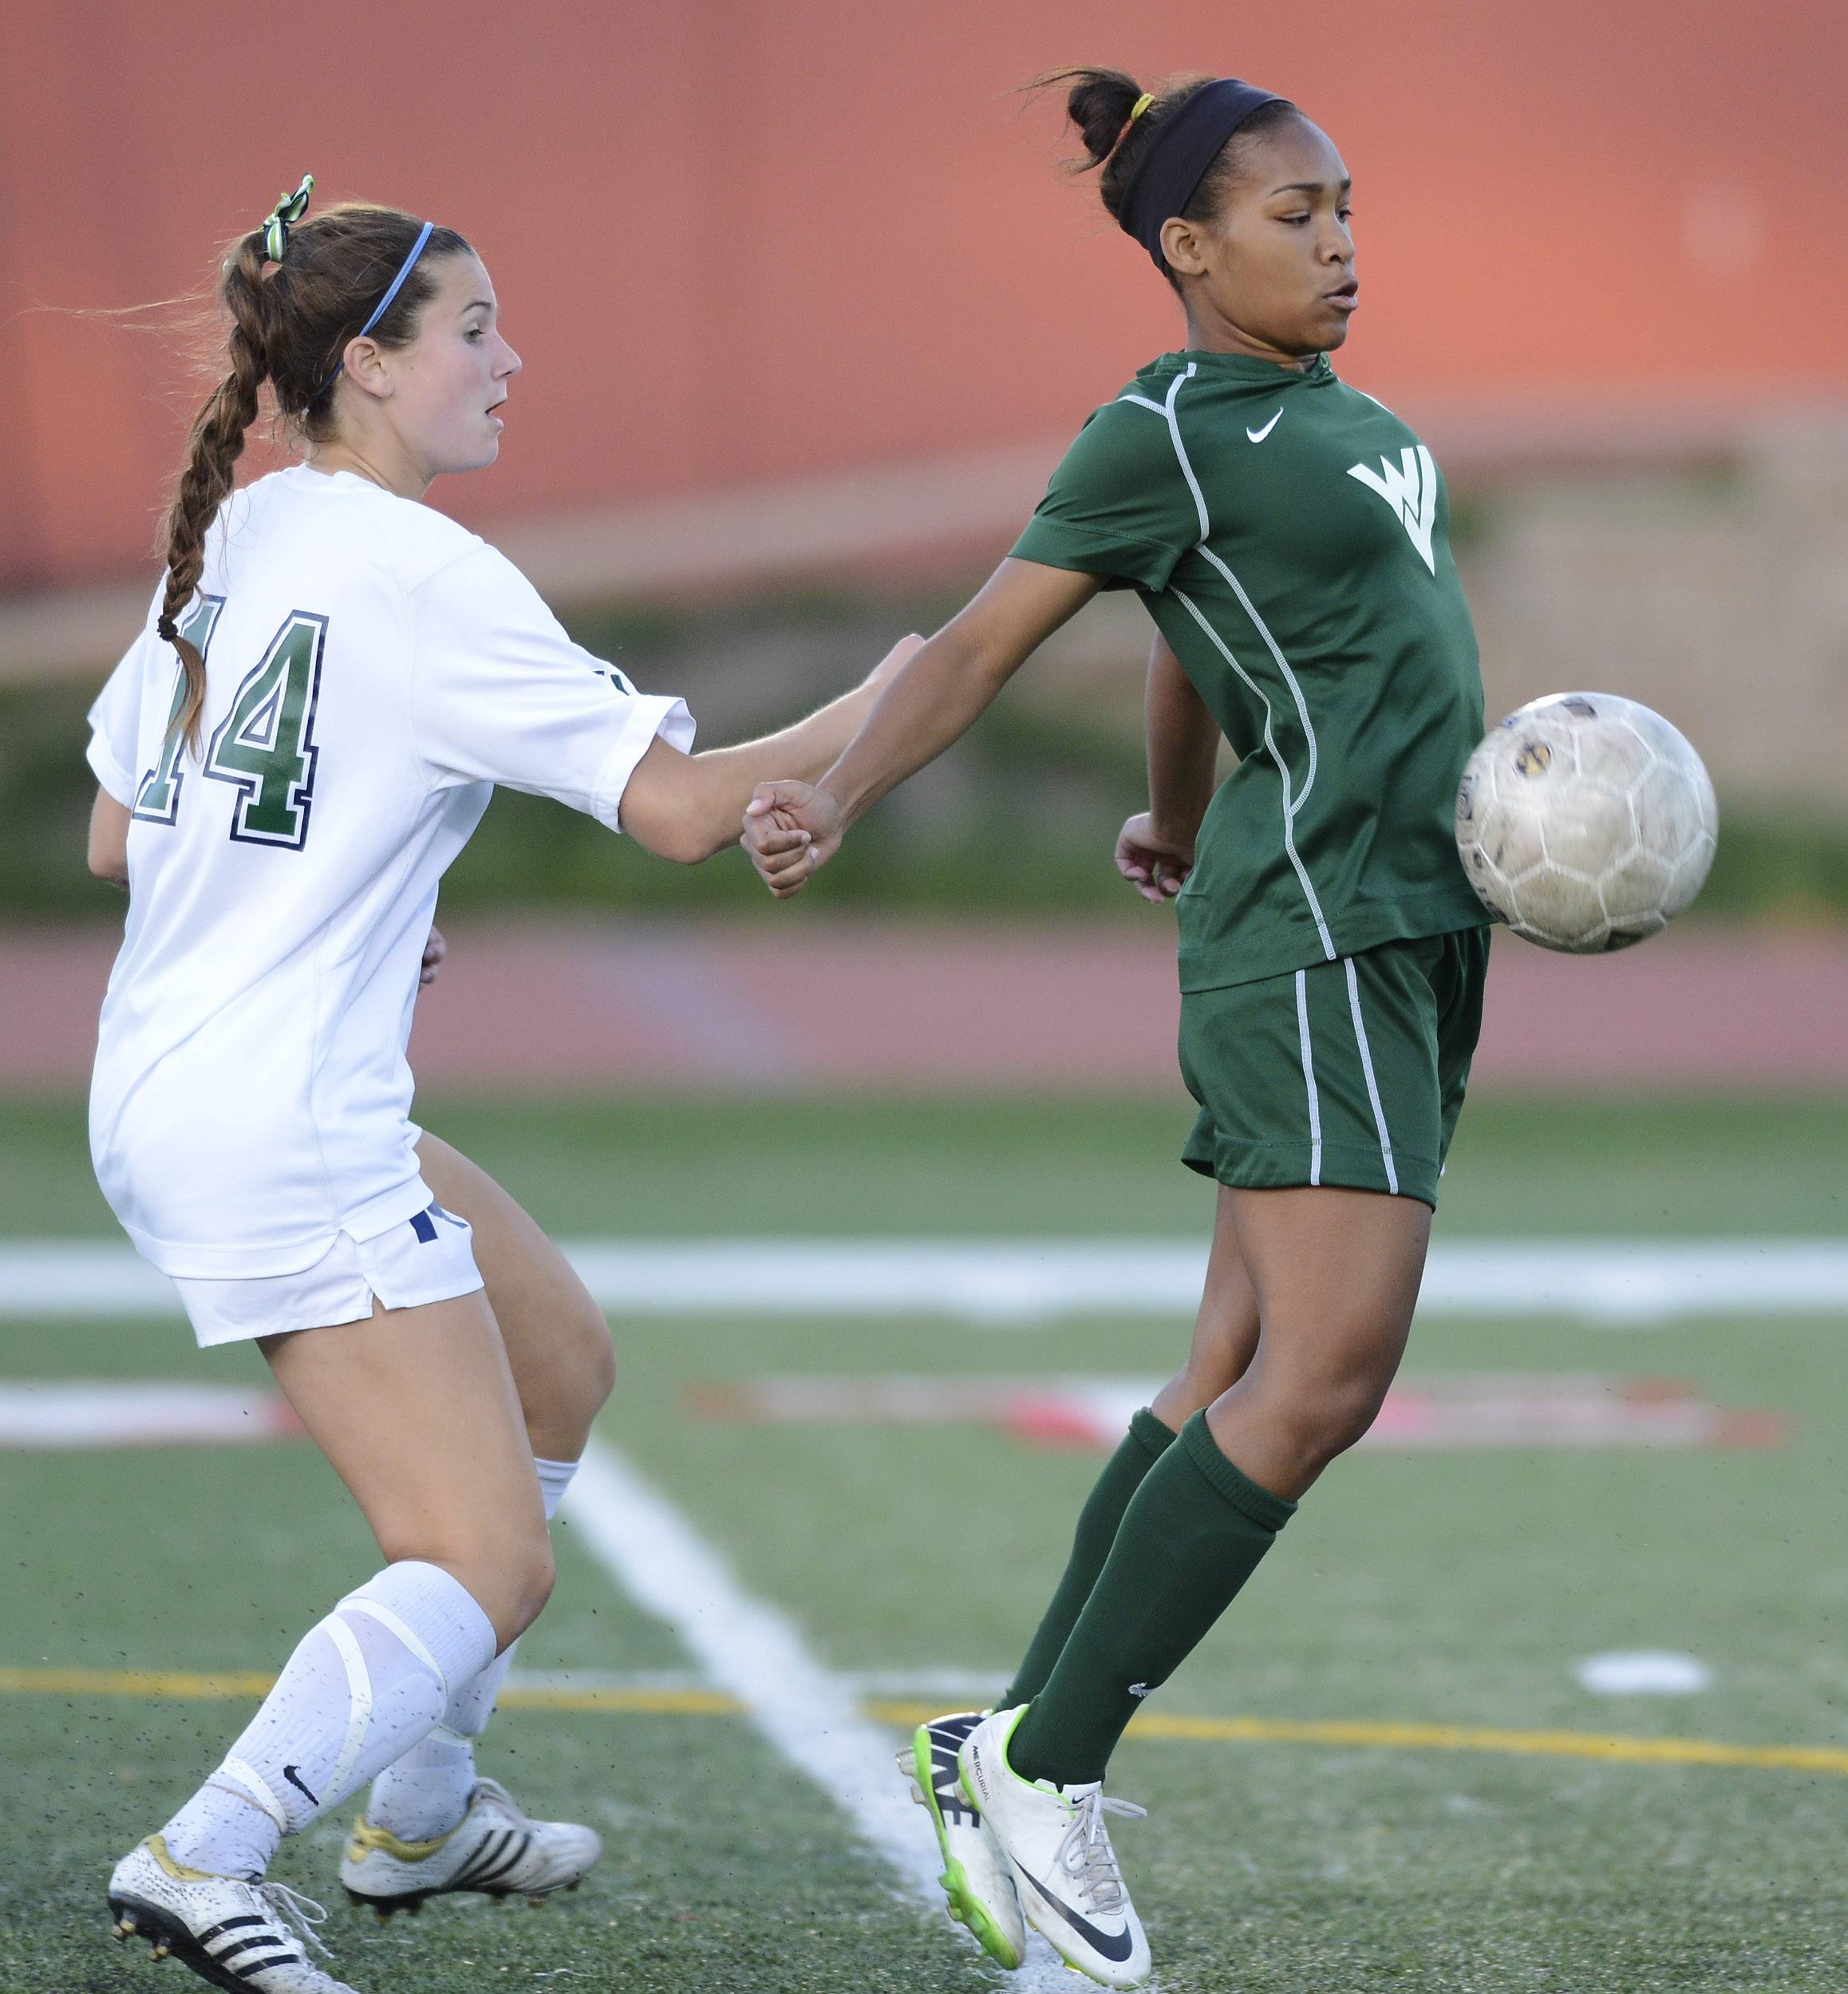 Waubonsie Valley's Kristen Dodson, right, tries to control the ball in front of New Trier's Sarah Connors during the girls soccer Class 3A state semifinal at North Central College in Naperville Friday.